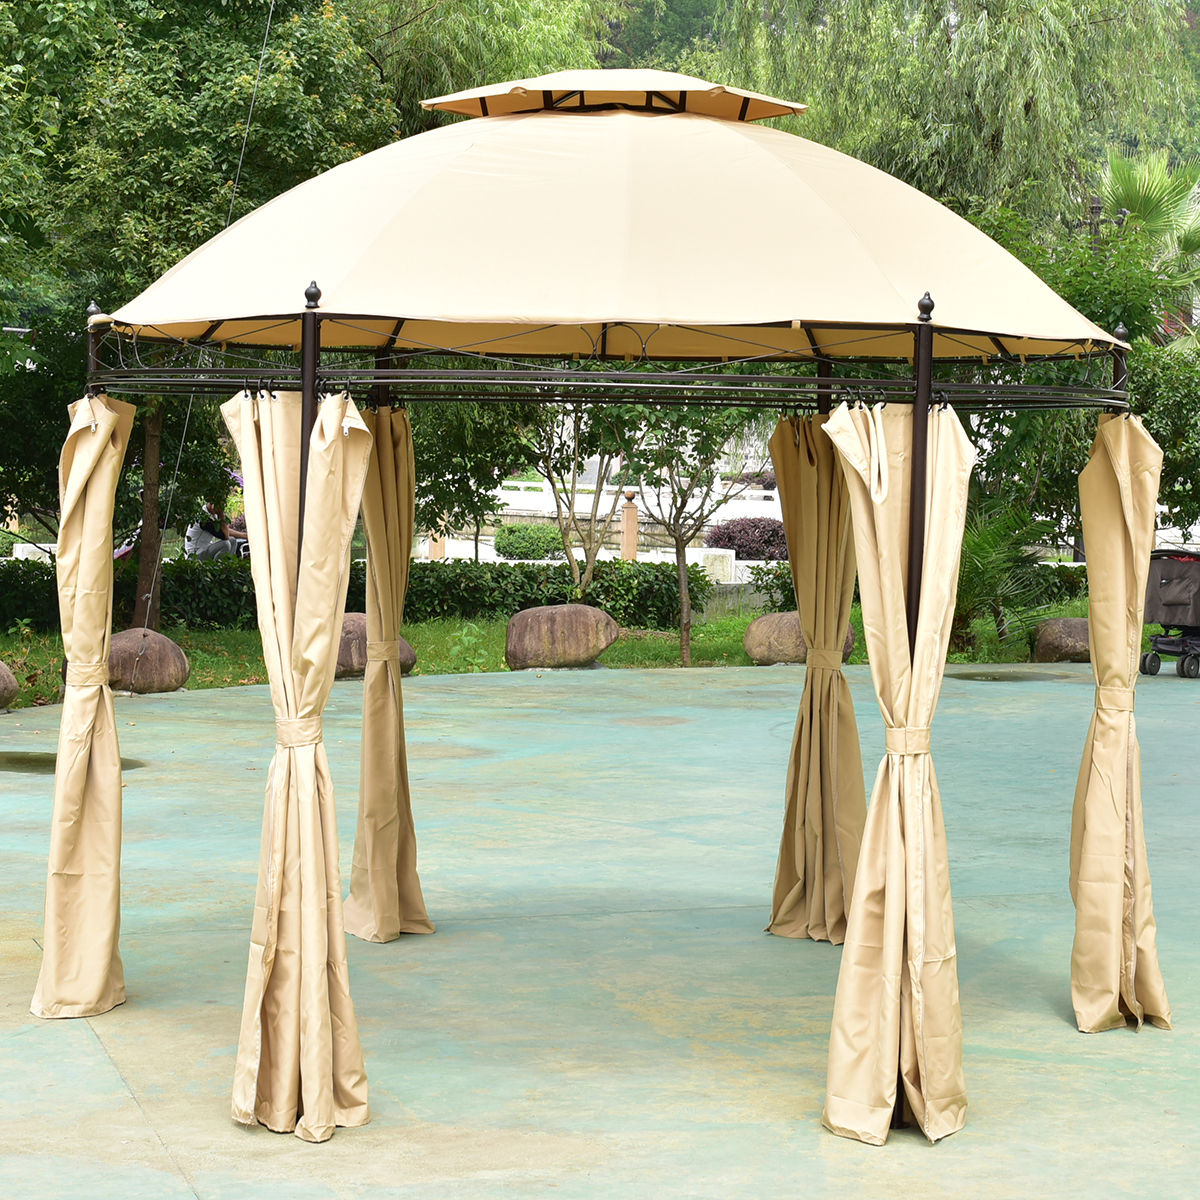 Costway 10ft Round Outdoor Gazebo Canopy Shelter Awning Tent Patio Garden by Costway